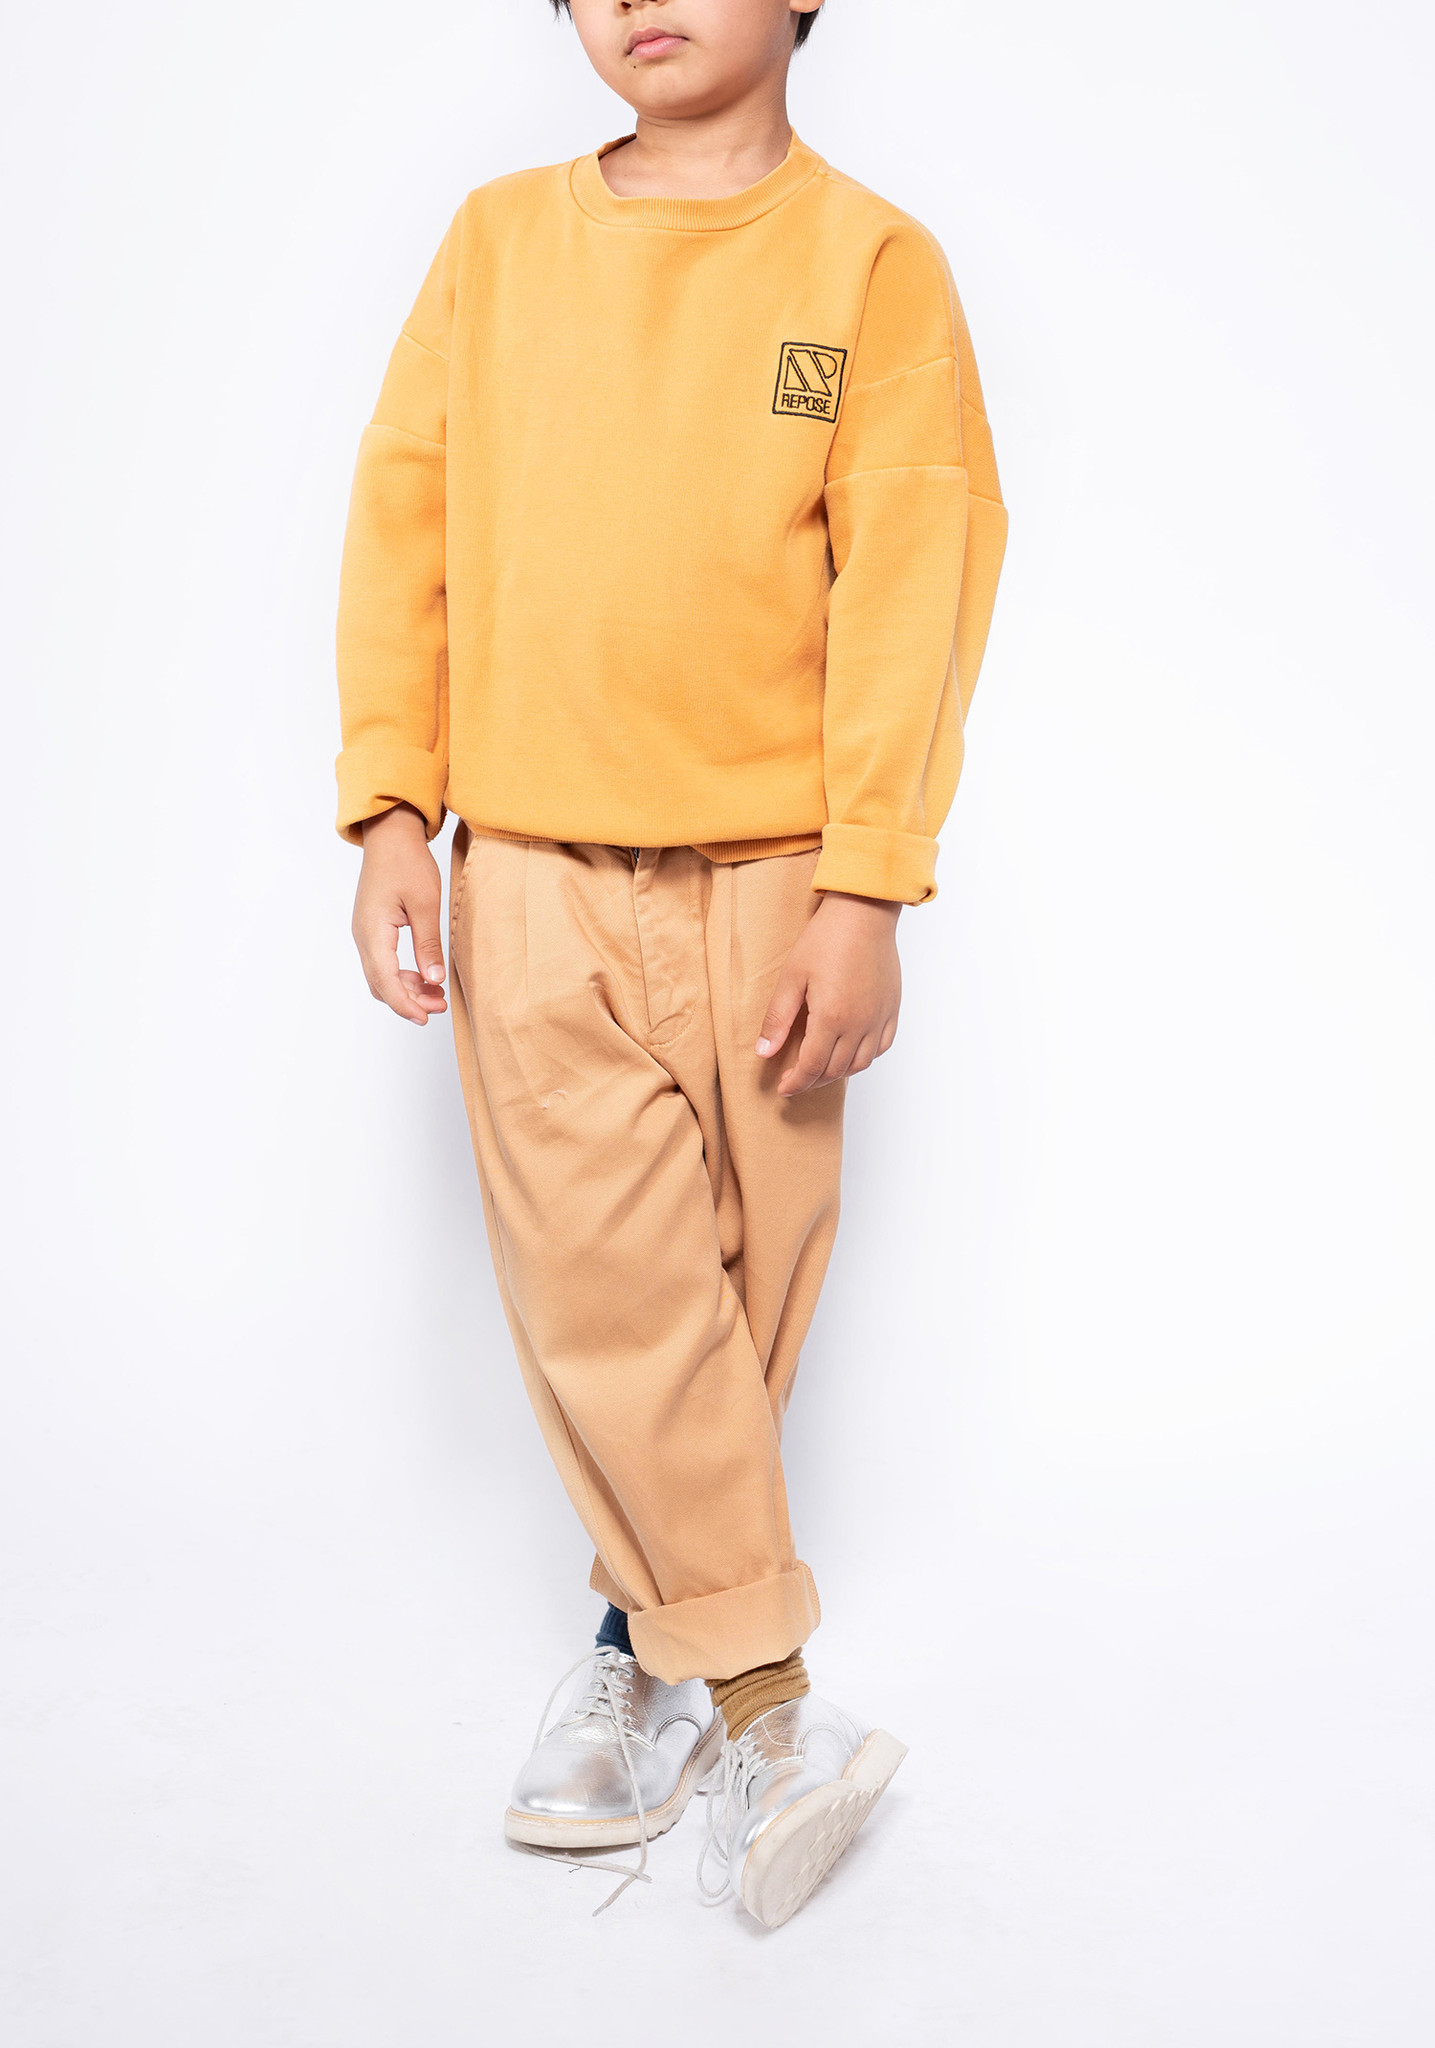 Crewneck sweater - Radiant Yellow-3